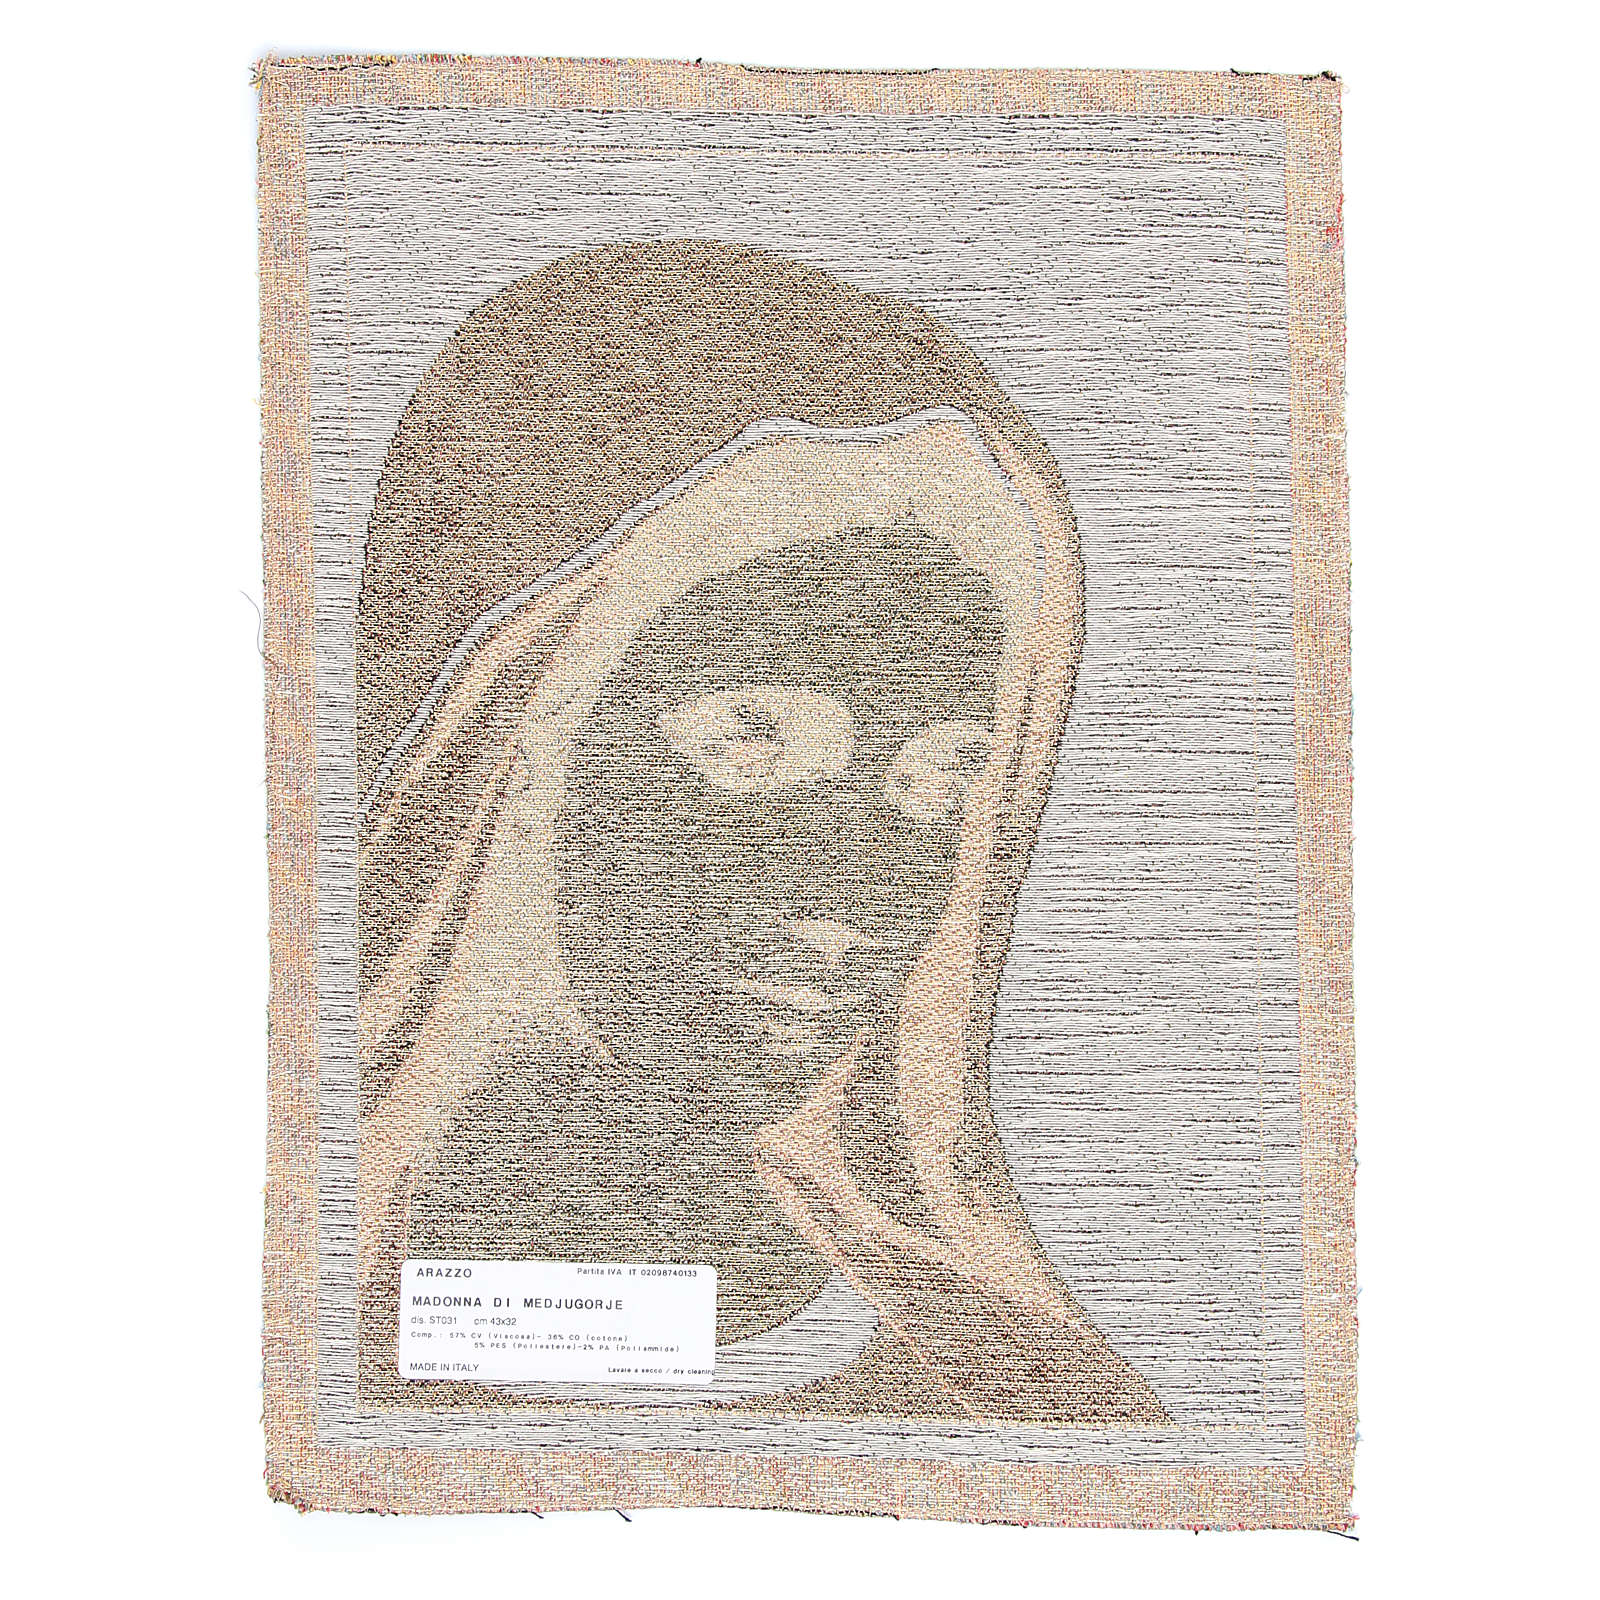 Our Lady of Medjugorje tapestry measuring 30x45cm 3